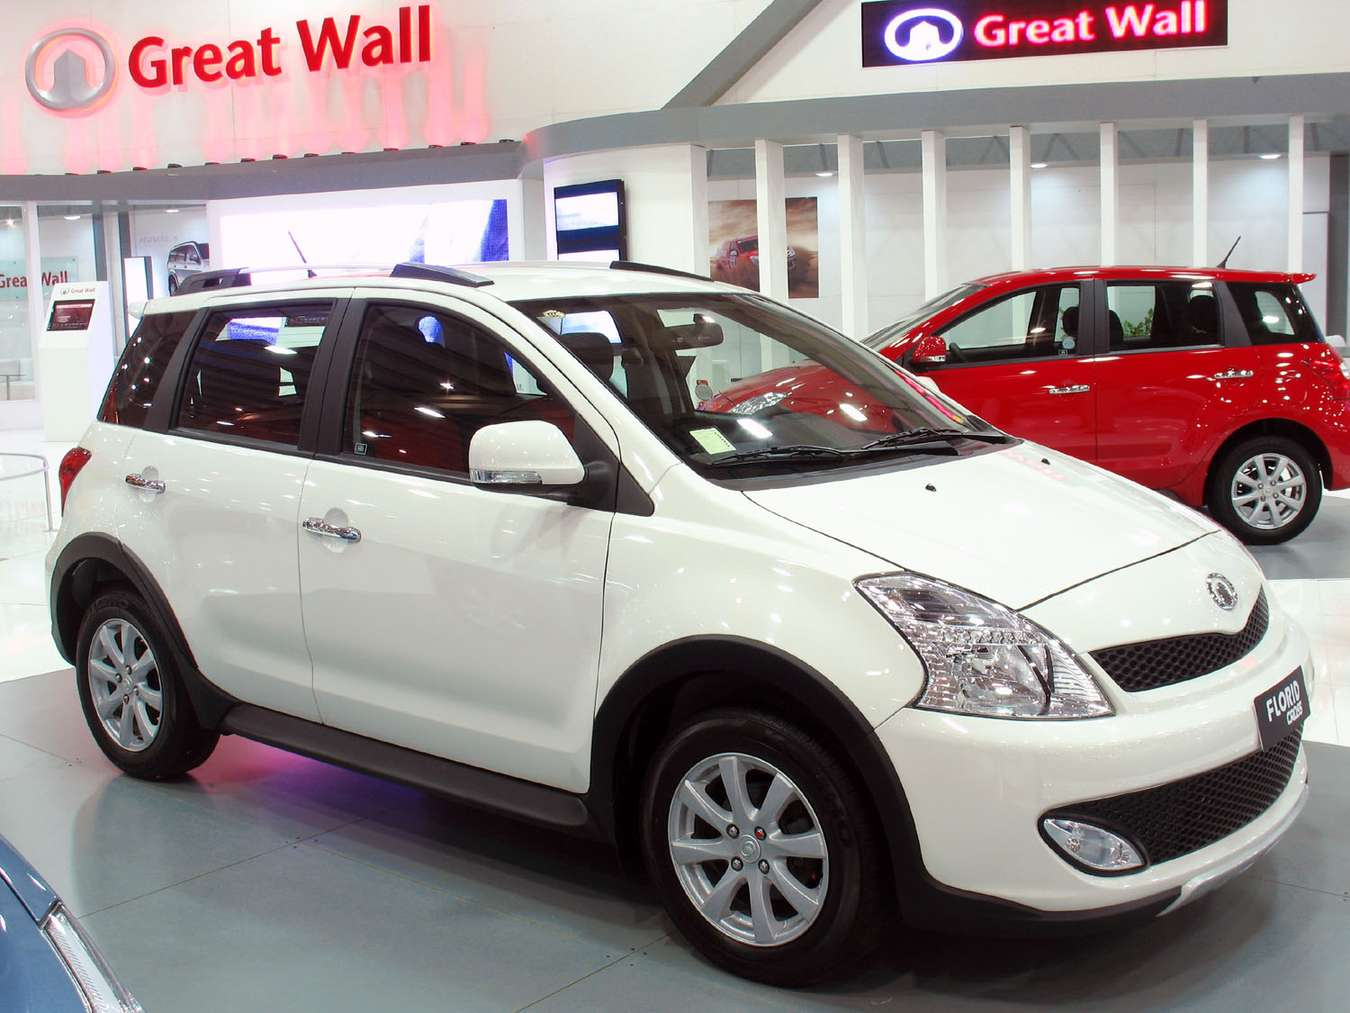 Great Wall Florid #8313576